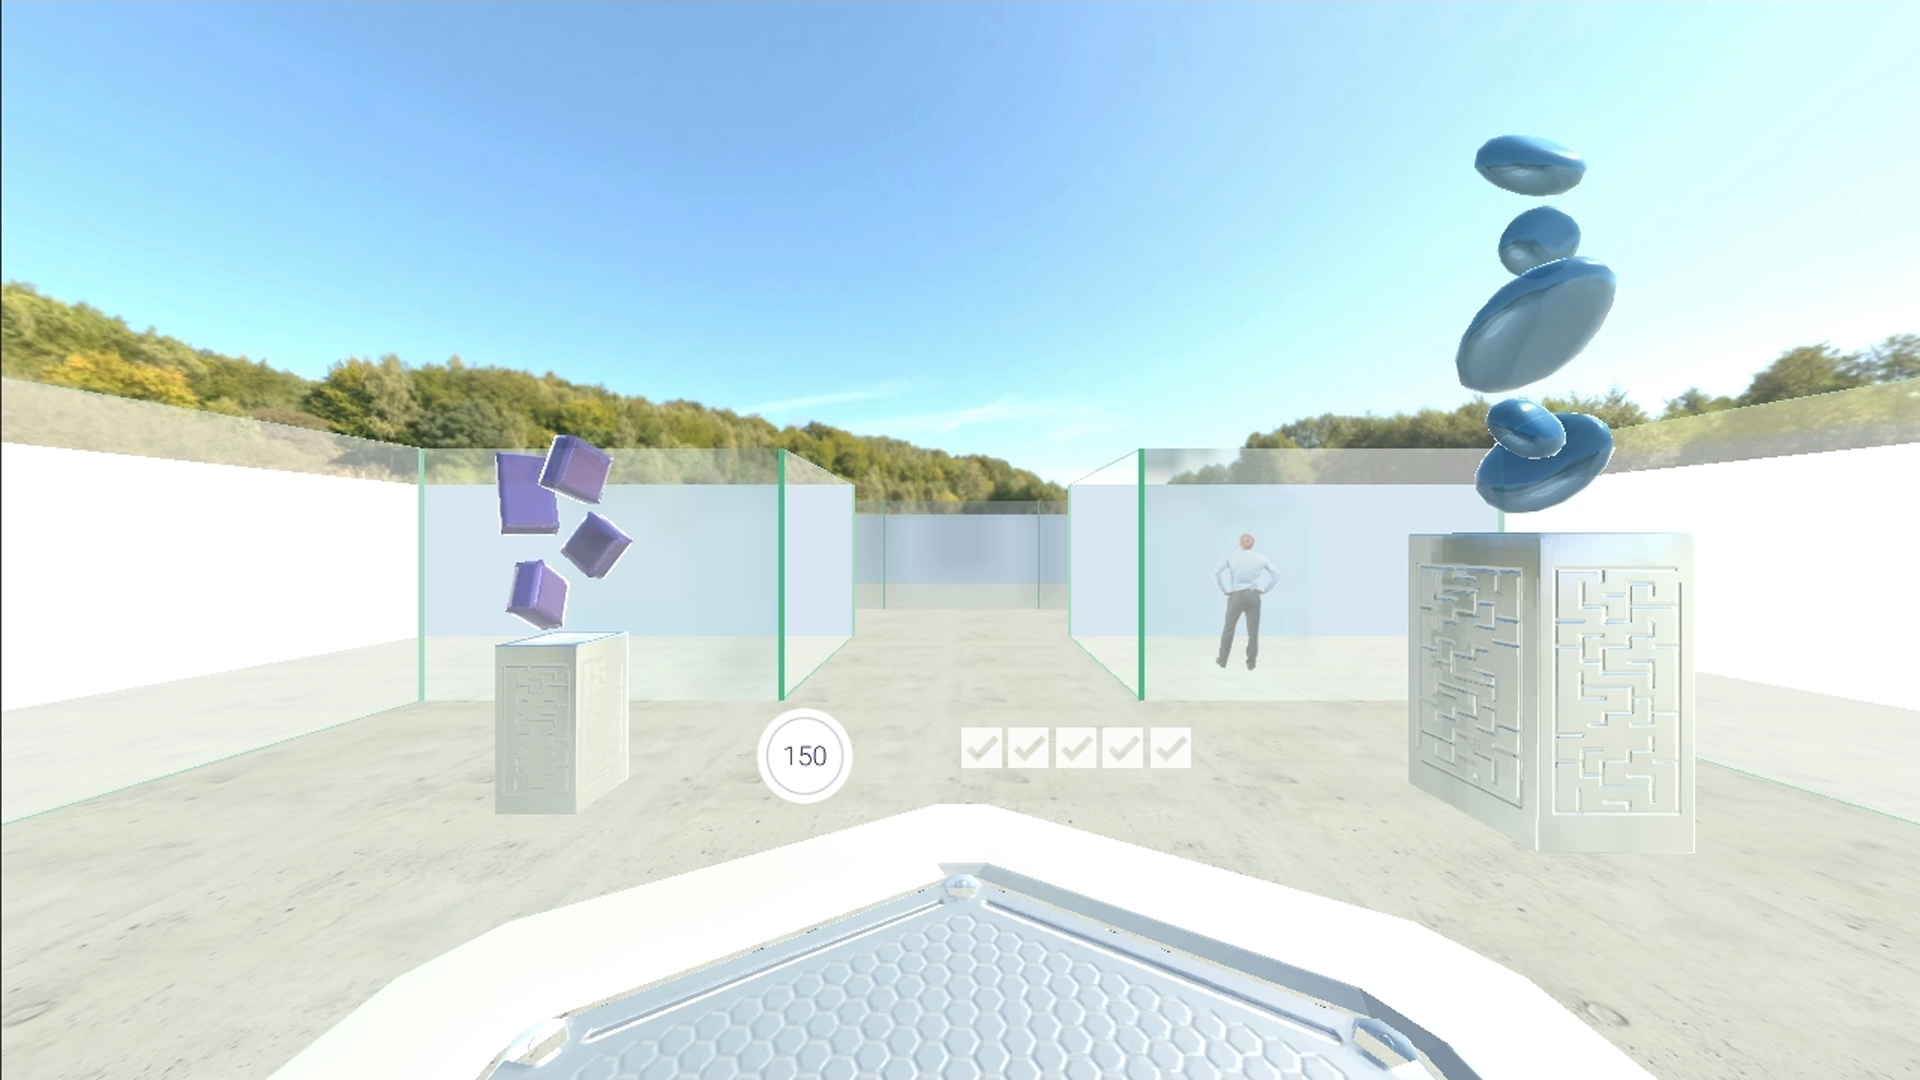 vr_learning_05, VR environment of glass maze with pond and circular and cubical objects floating above 2 plints